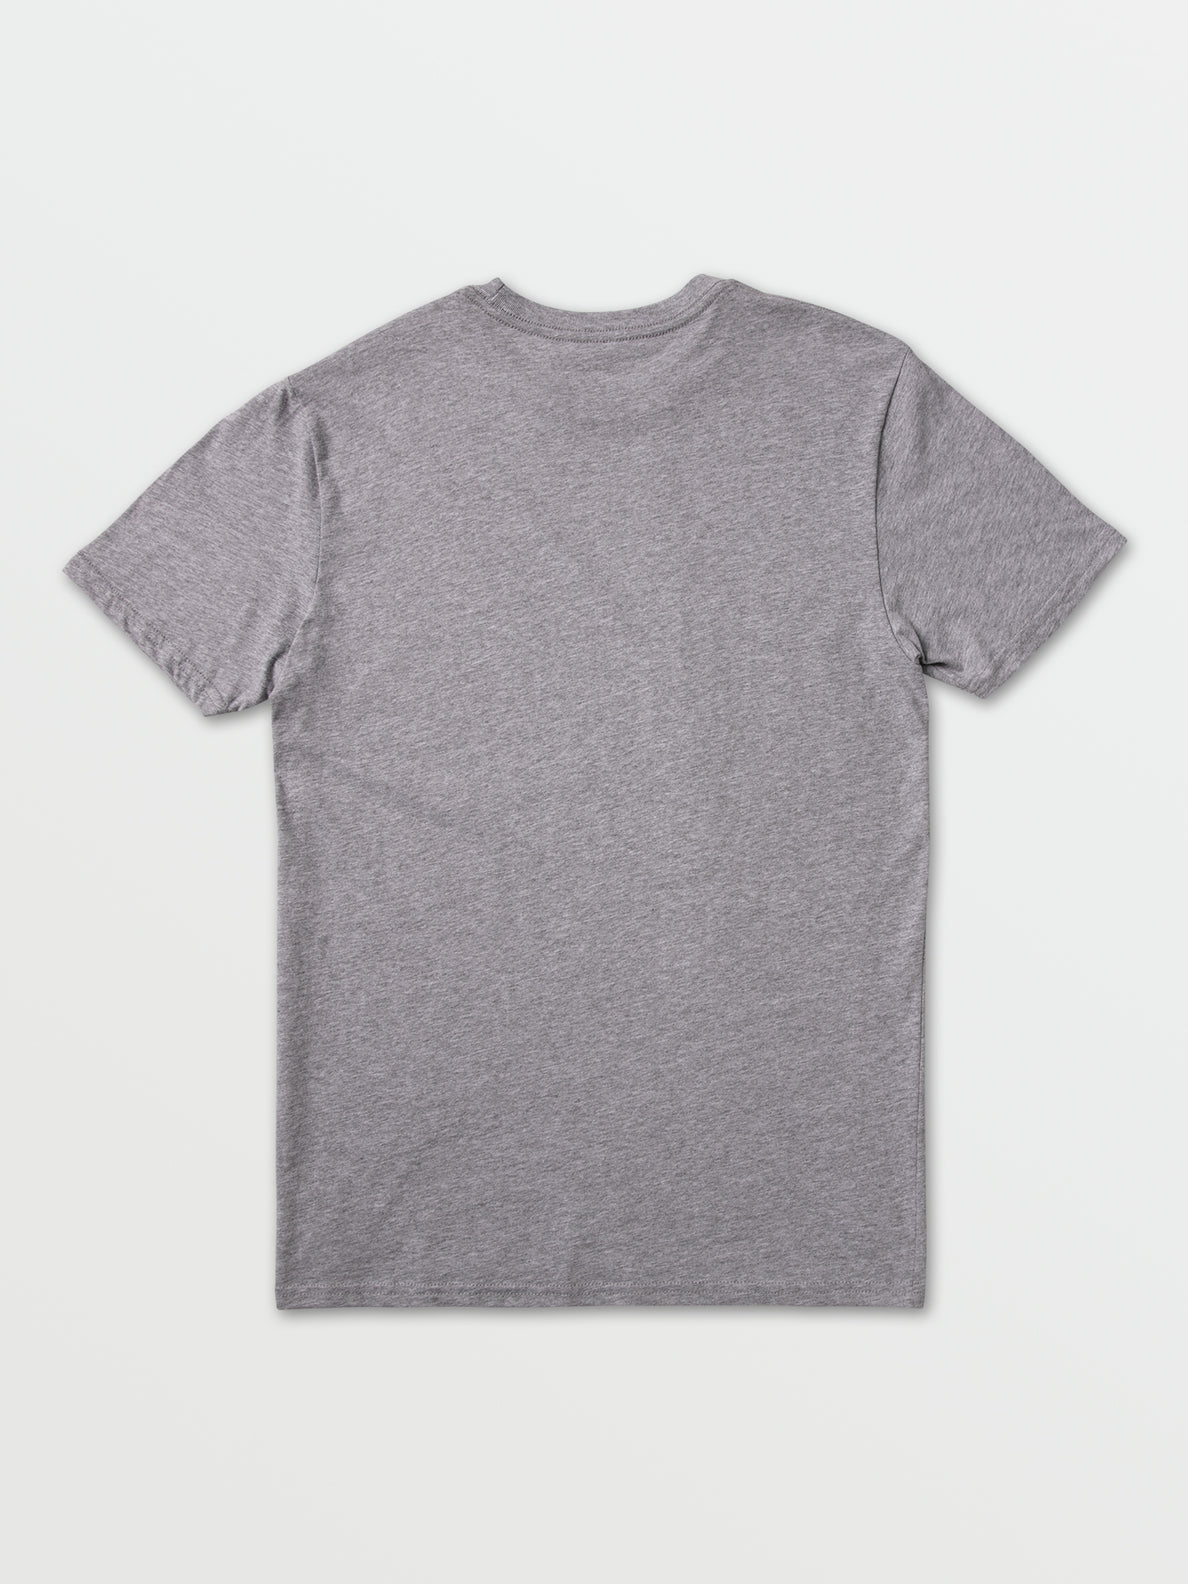 Yae Ed Short Sleeve Heather Tee - Athletic Heather (A5701909_HGR) [B]